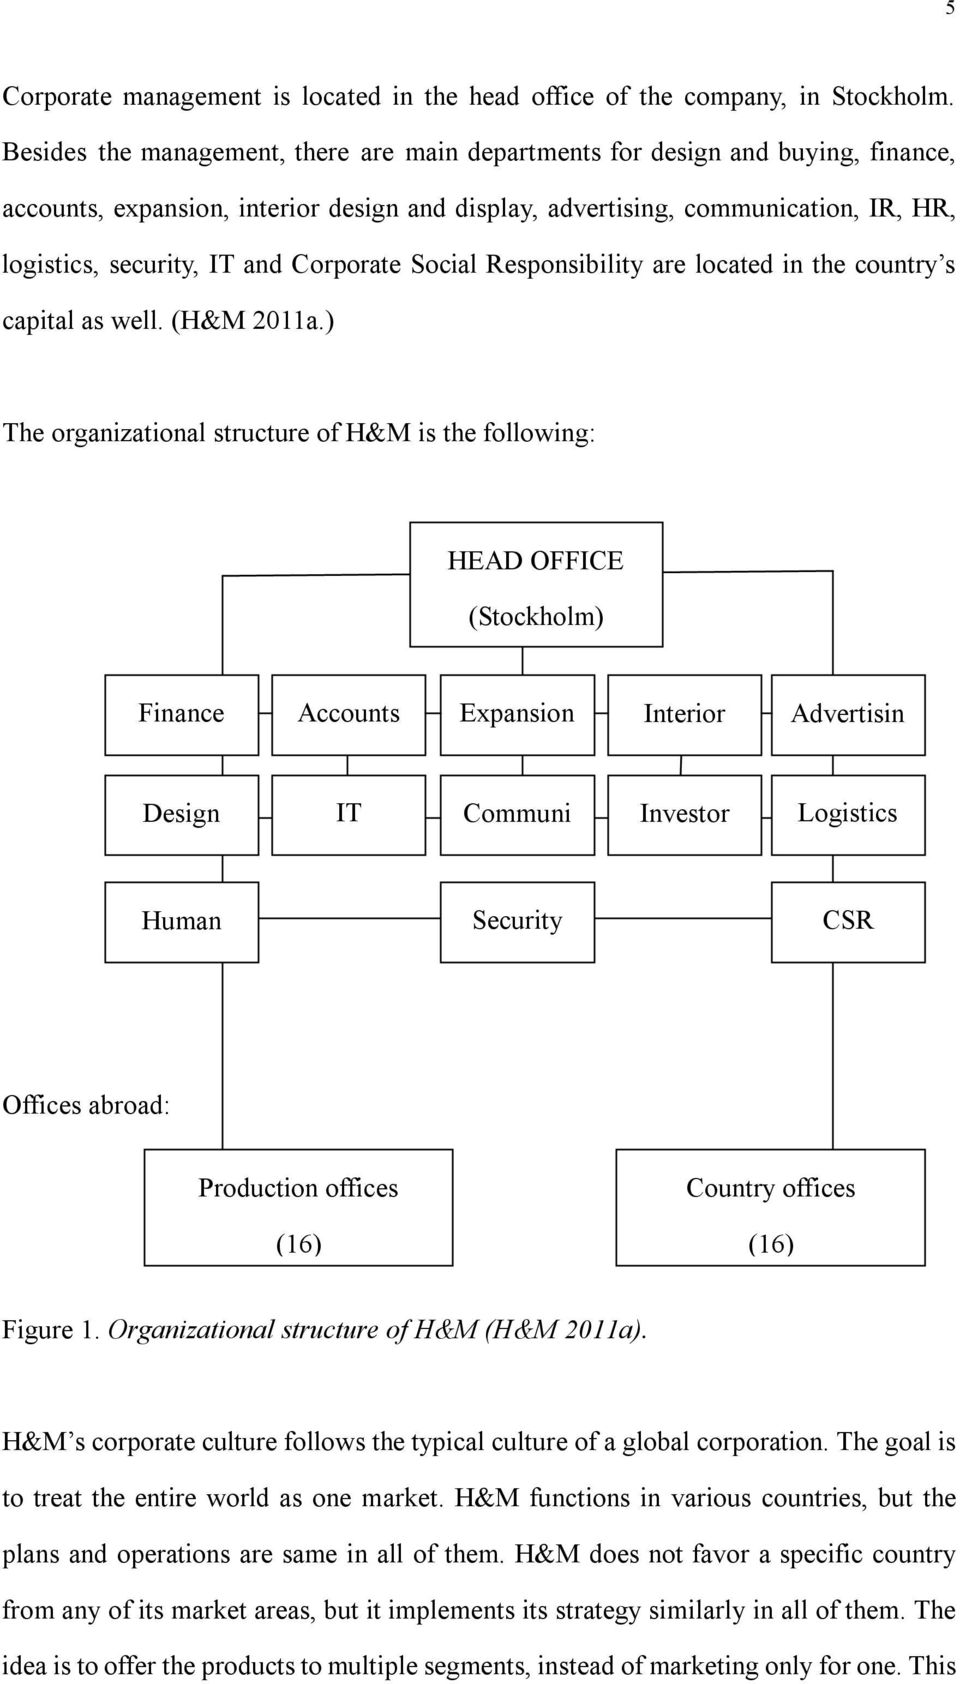 THE IMPORTANCE OF STRATEGIC MANAGEMENT A case study of H&M - PDF